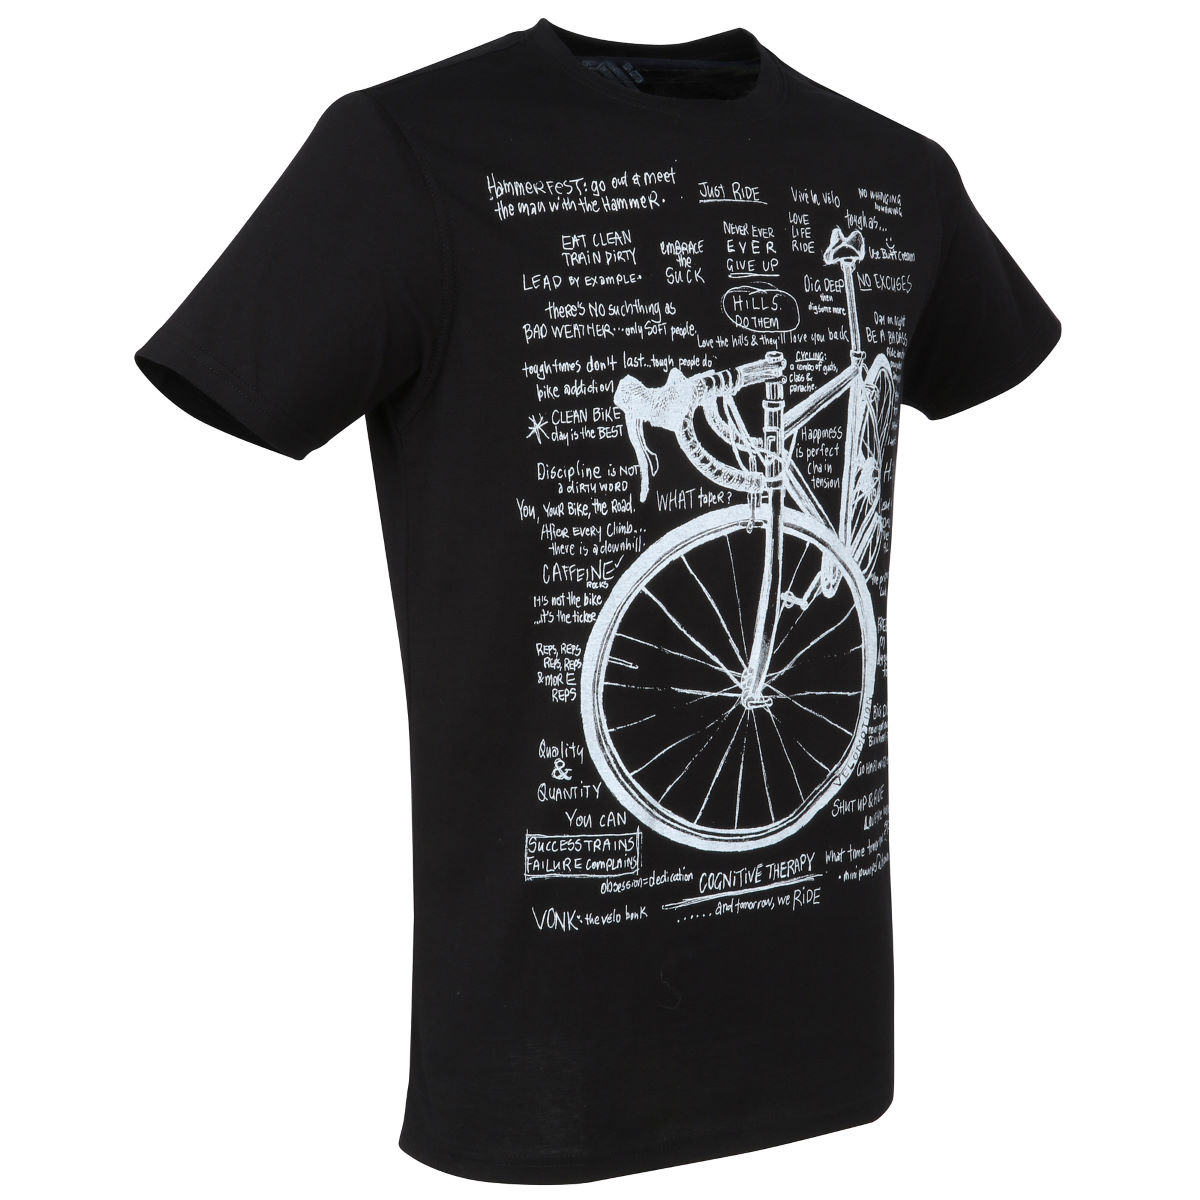 Cycology cognitive therapy t shirt review for T shirt company reviews